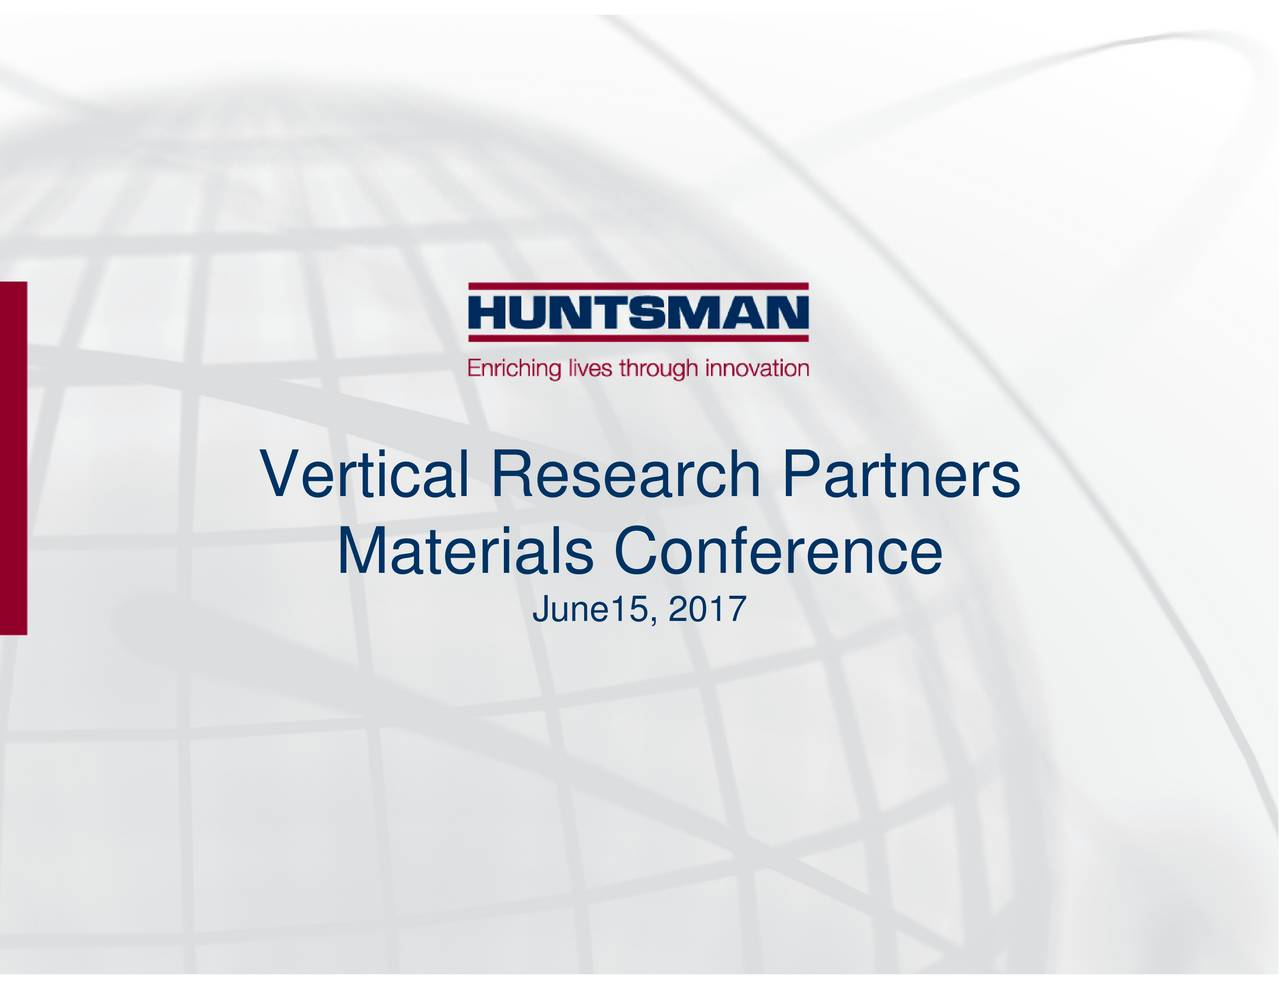 Materials Conference Vertical Research Partners